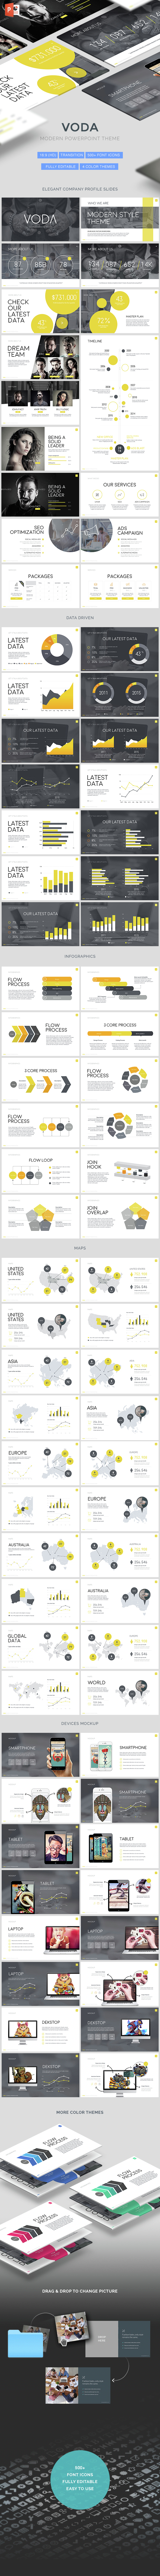 Voda - Creative Powerpoint Template - PowerPoint Templates Presentation Templates